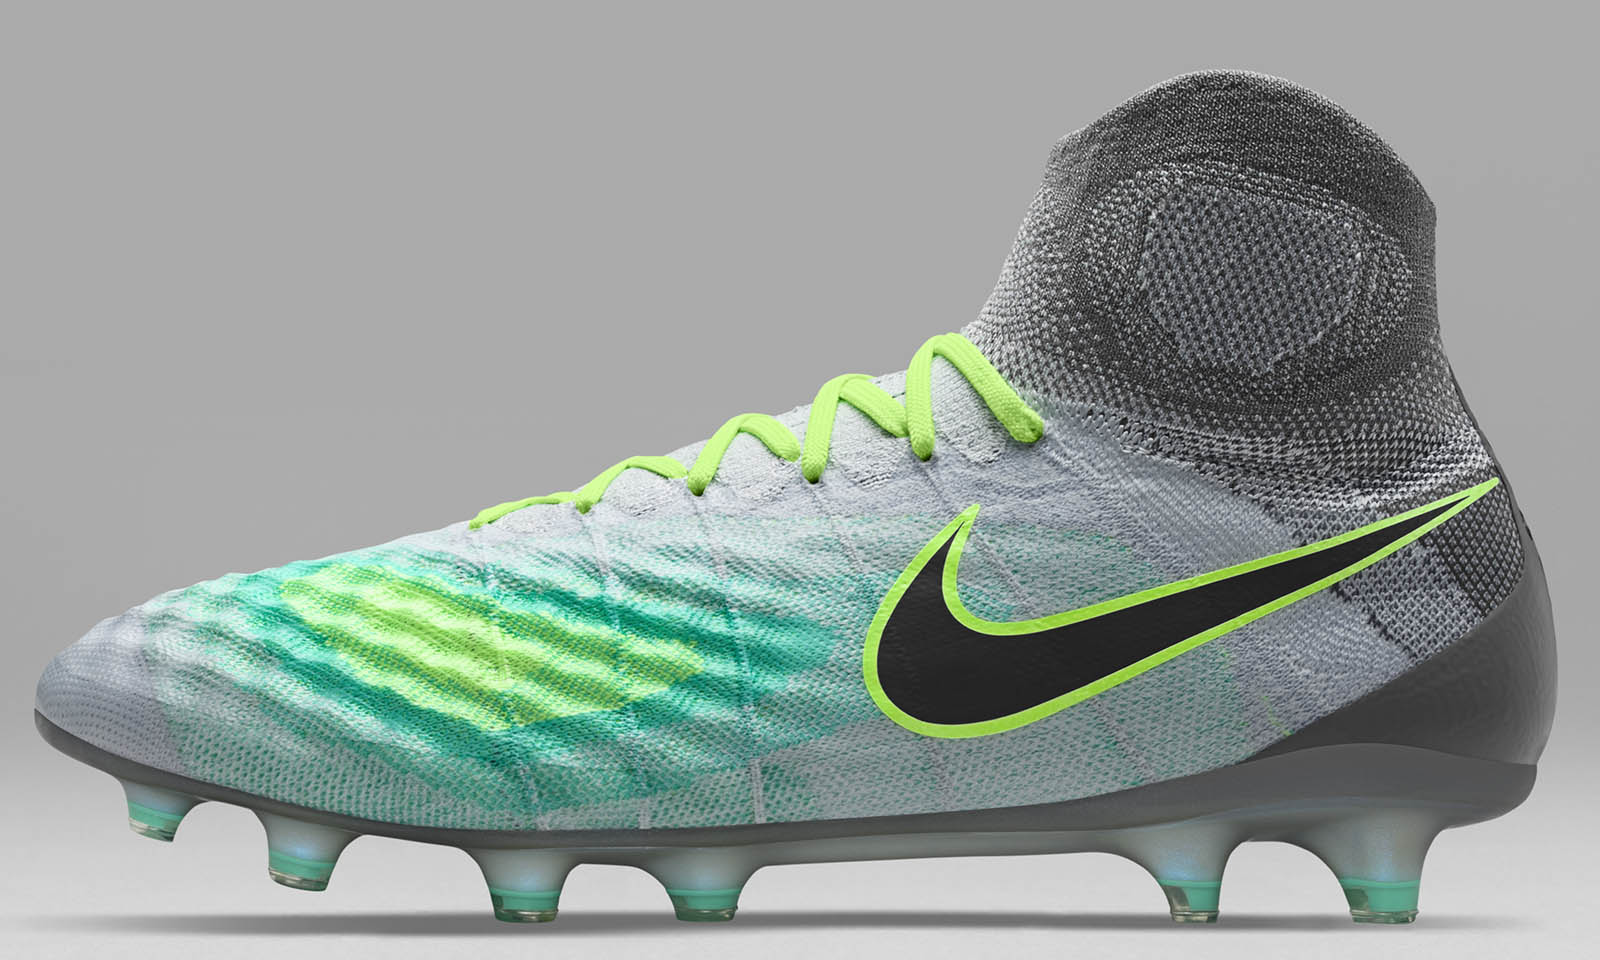 pure platinum next gen nike magista obra ii 2016 17 elite pack boots released footy headlines. Black Bedroom Furniture Sets. Home Design Ideas